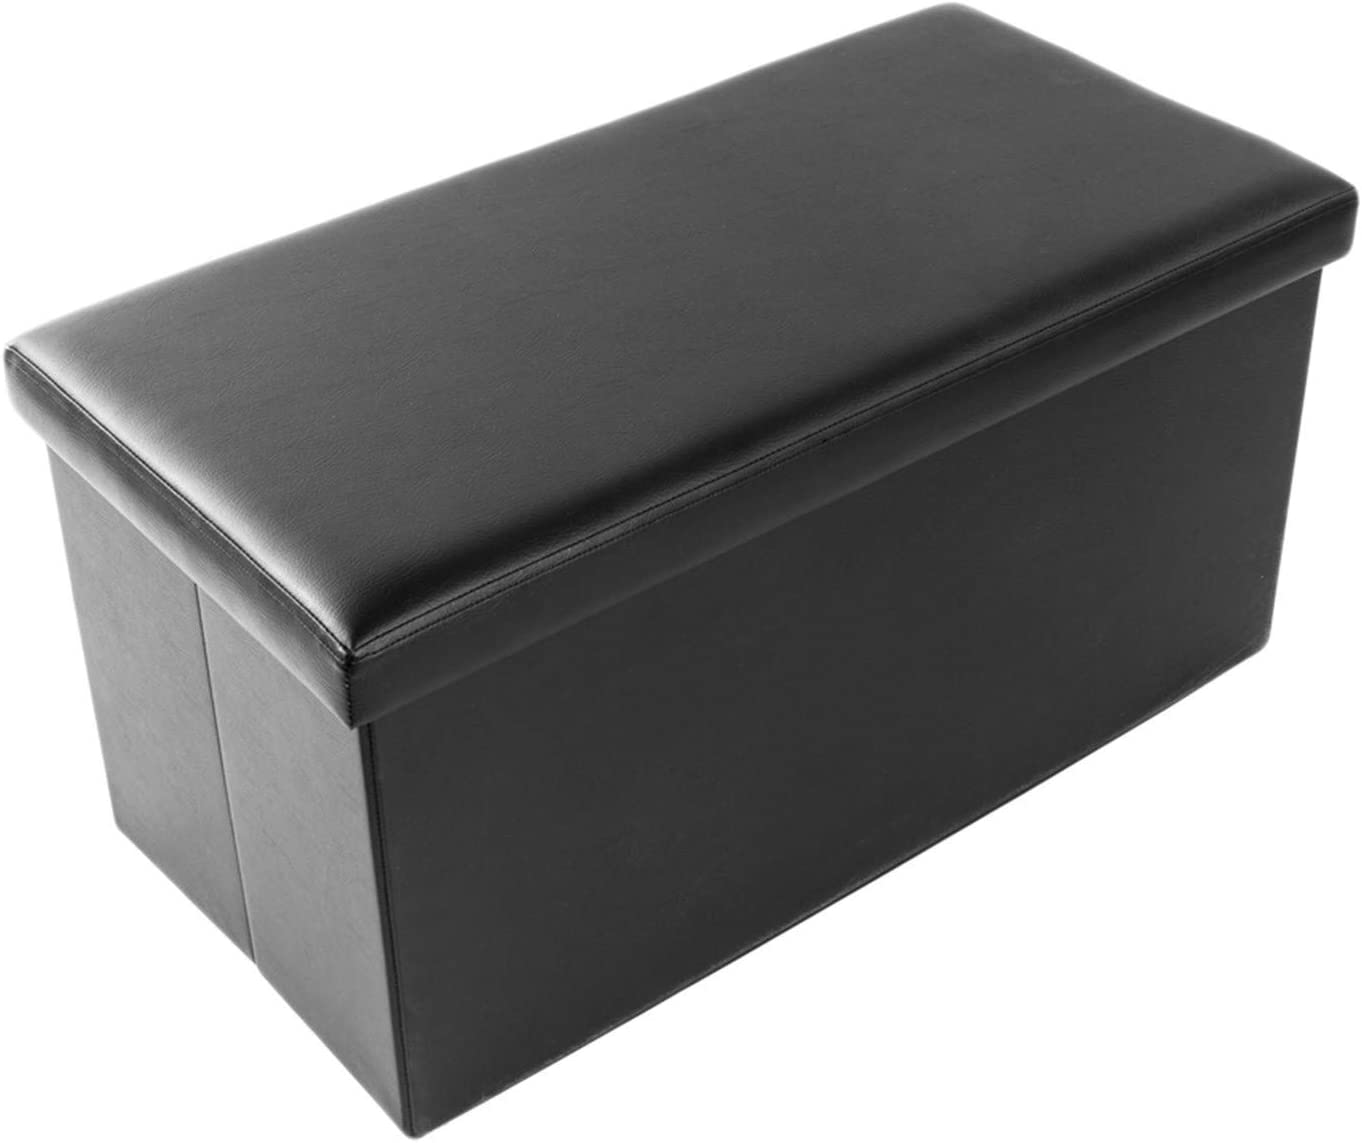 Trlec At the price gt4-DL PU Leather Max 44% OFF Footstool 76x38x38cm Black Smooth